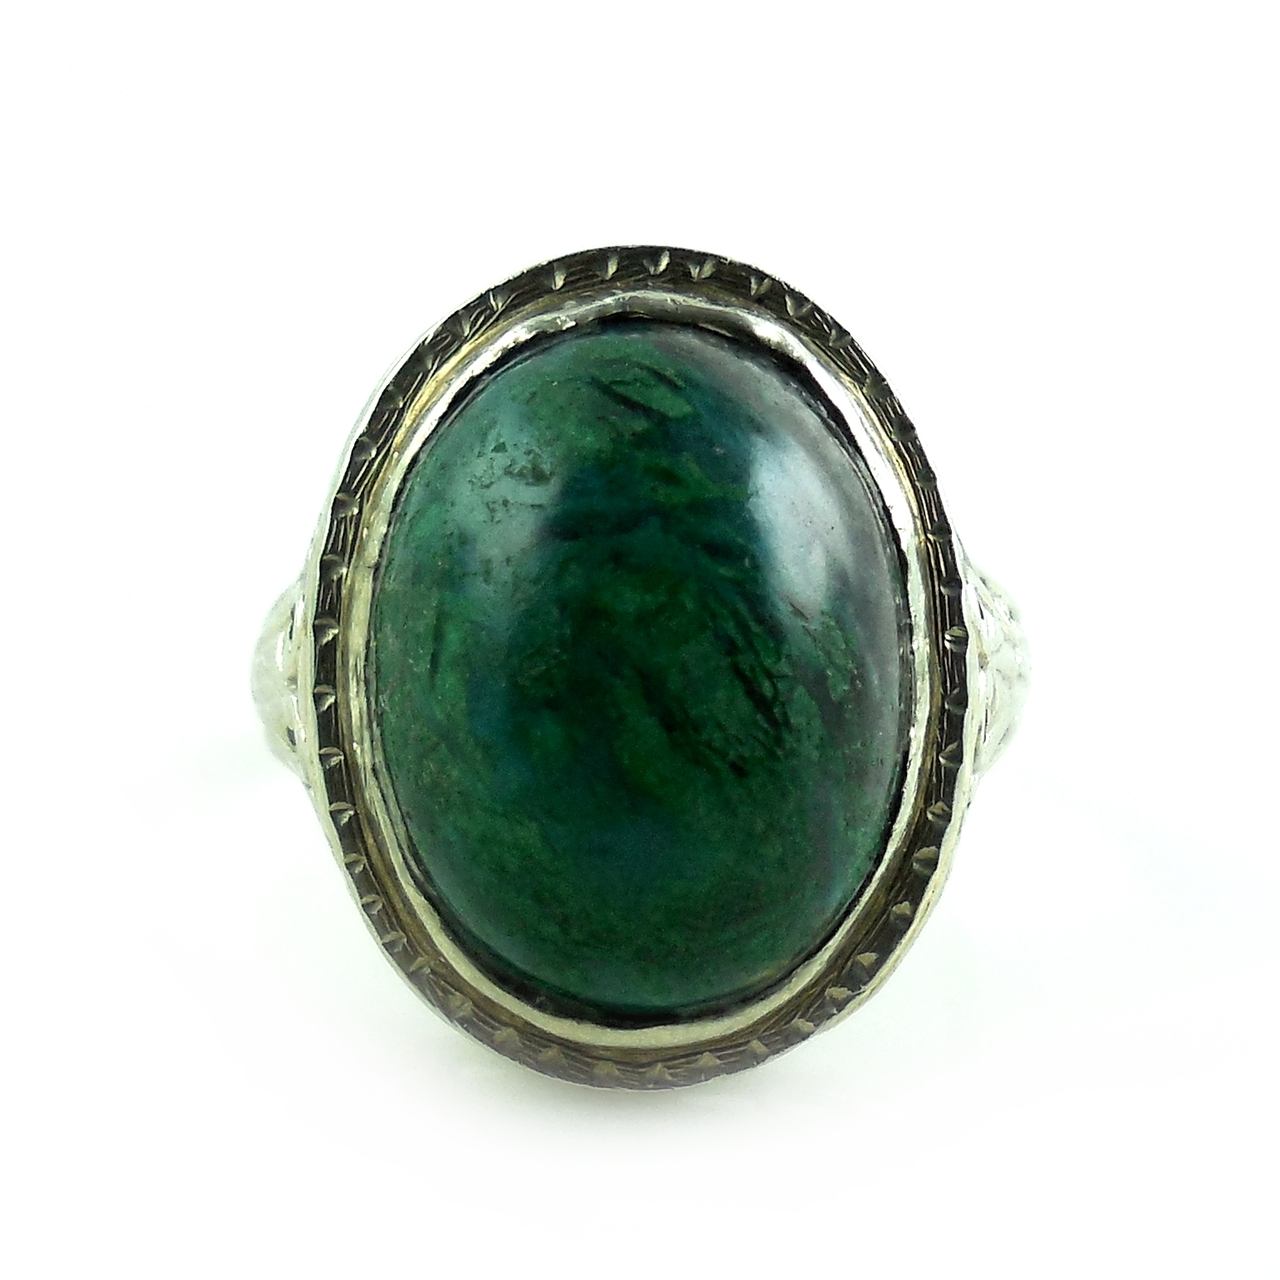 Antique 1927 Early Art Deco 14k White Gold Fancy Filigree Green Turquoise Stone Ring 6.5